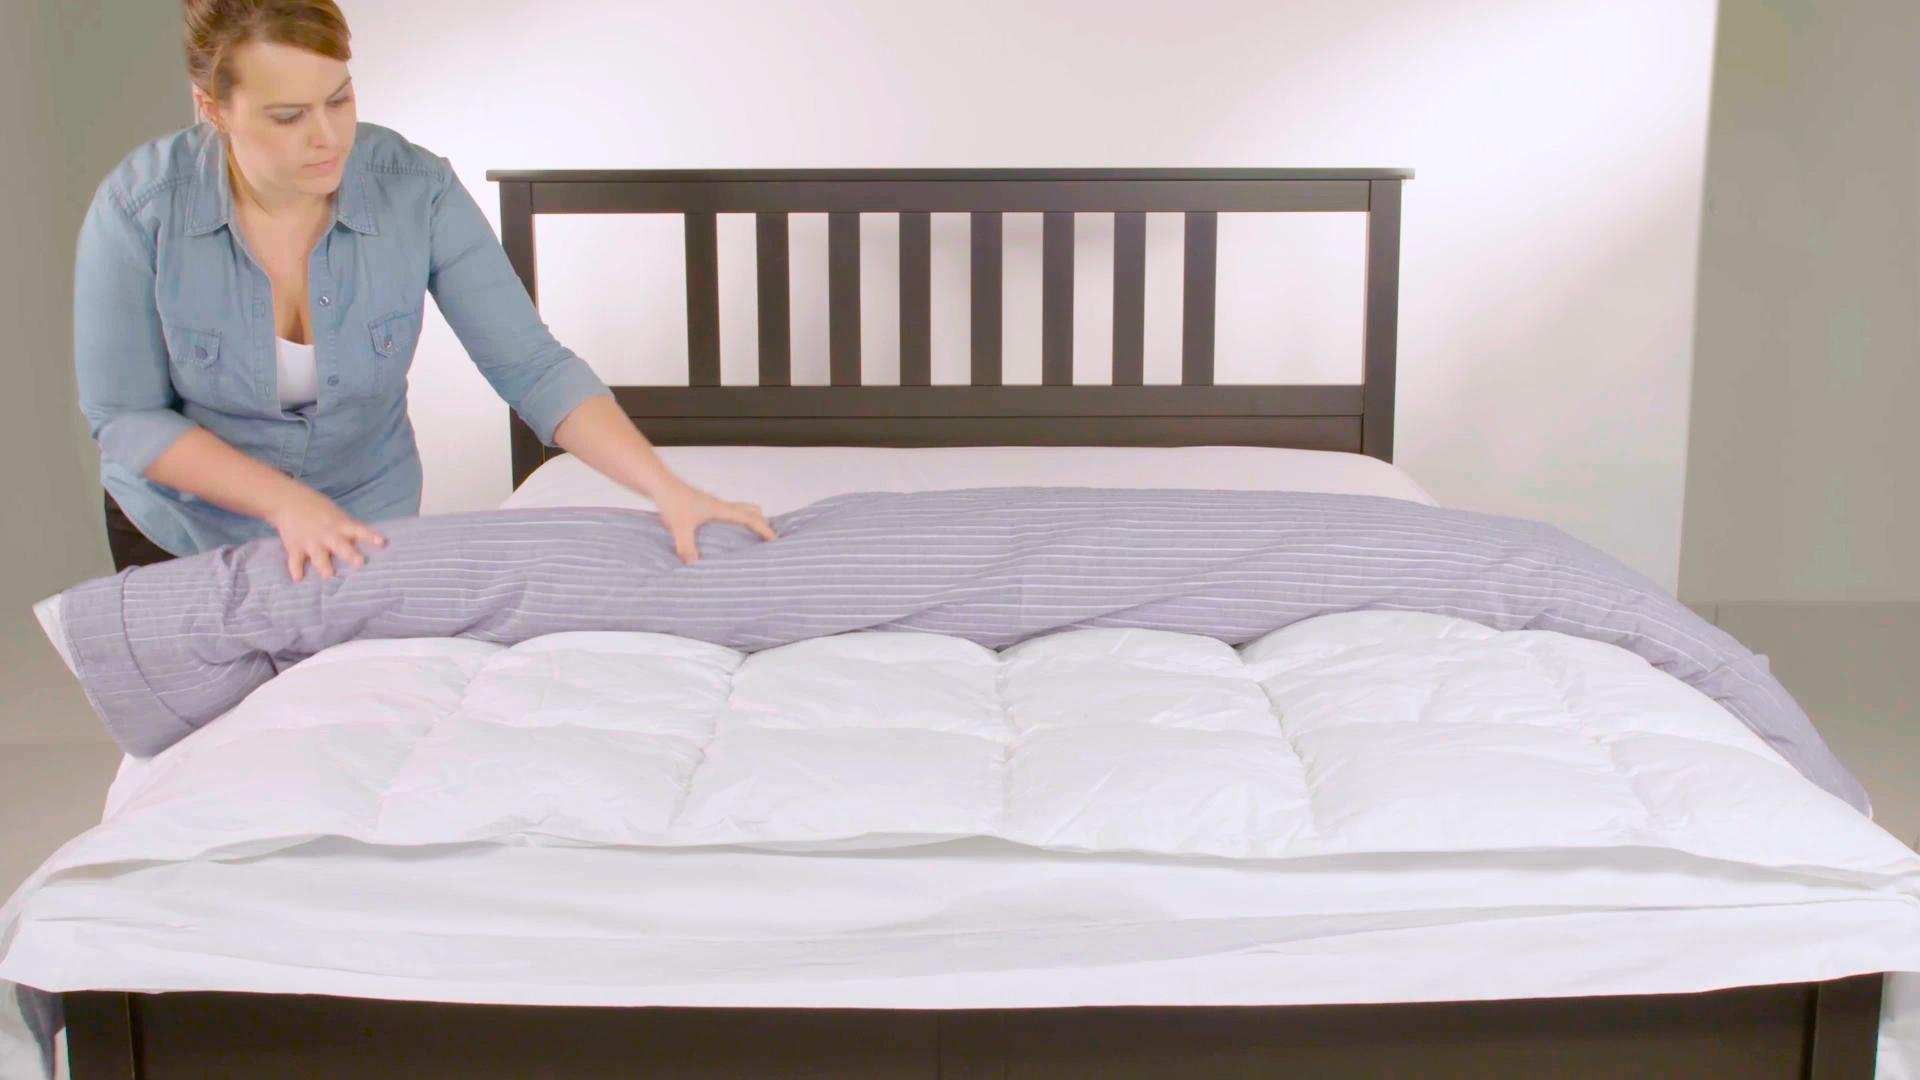 RELATED: How to Put on a Duvet Cover